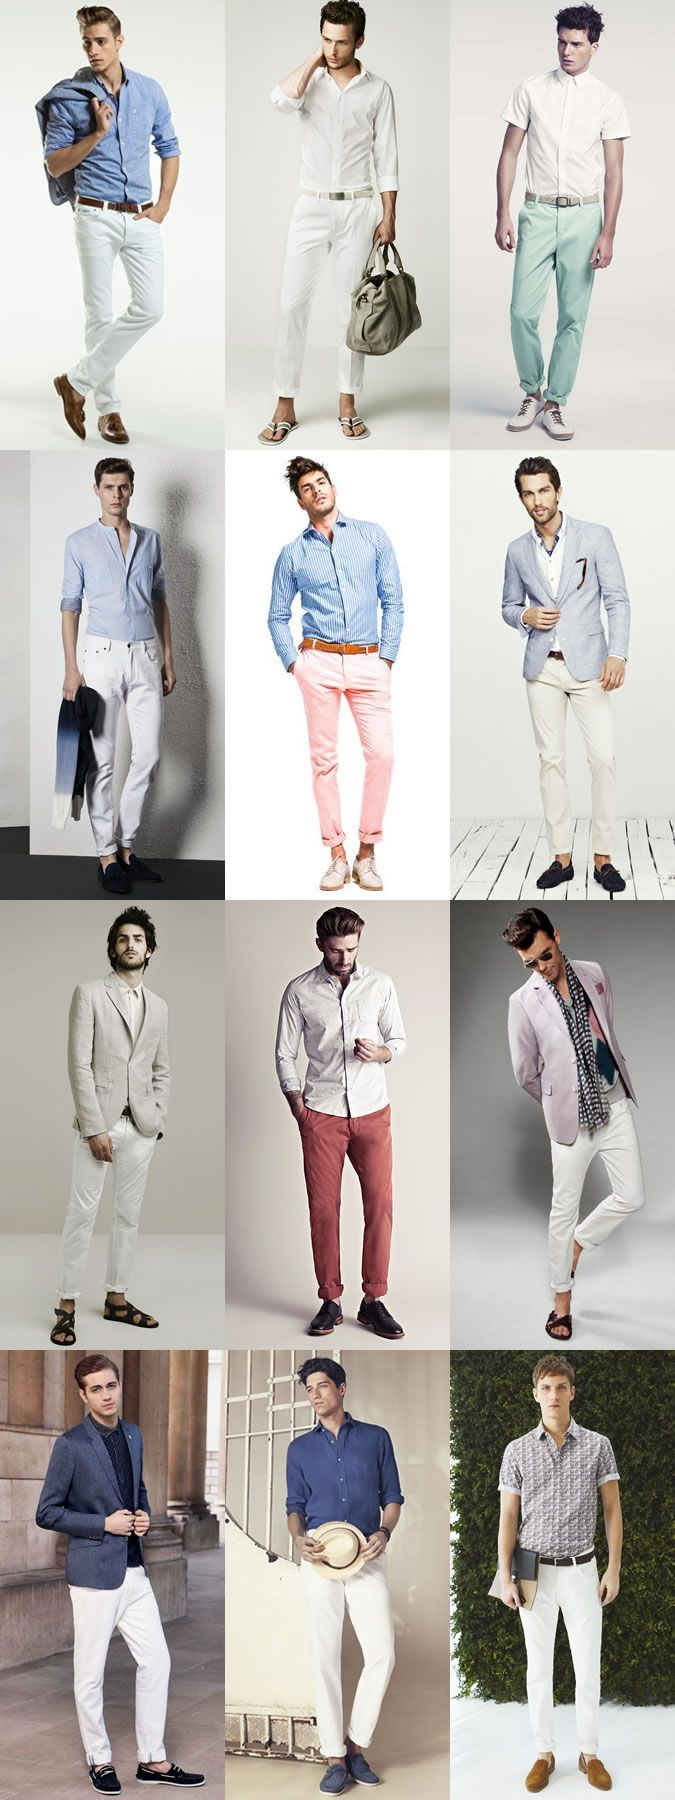 Men's Summer Wedding Guide: How To Dress For A Summer Wedding for The Wedding Abroad Lookbook Inspiration